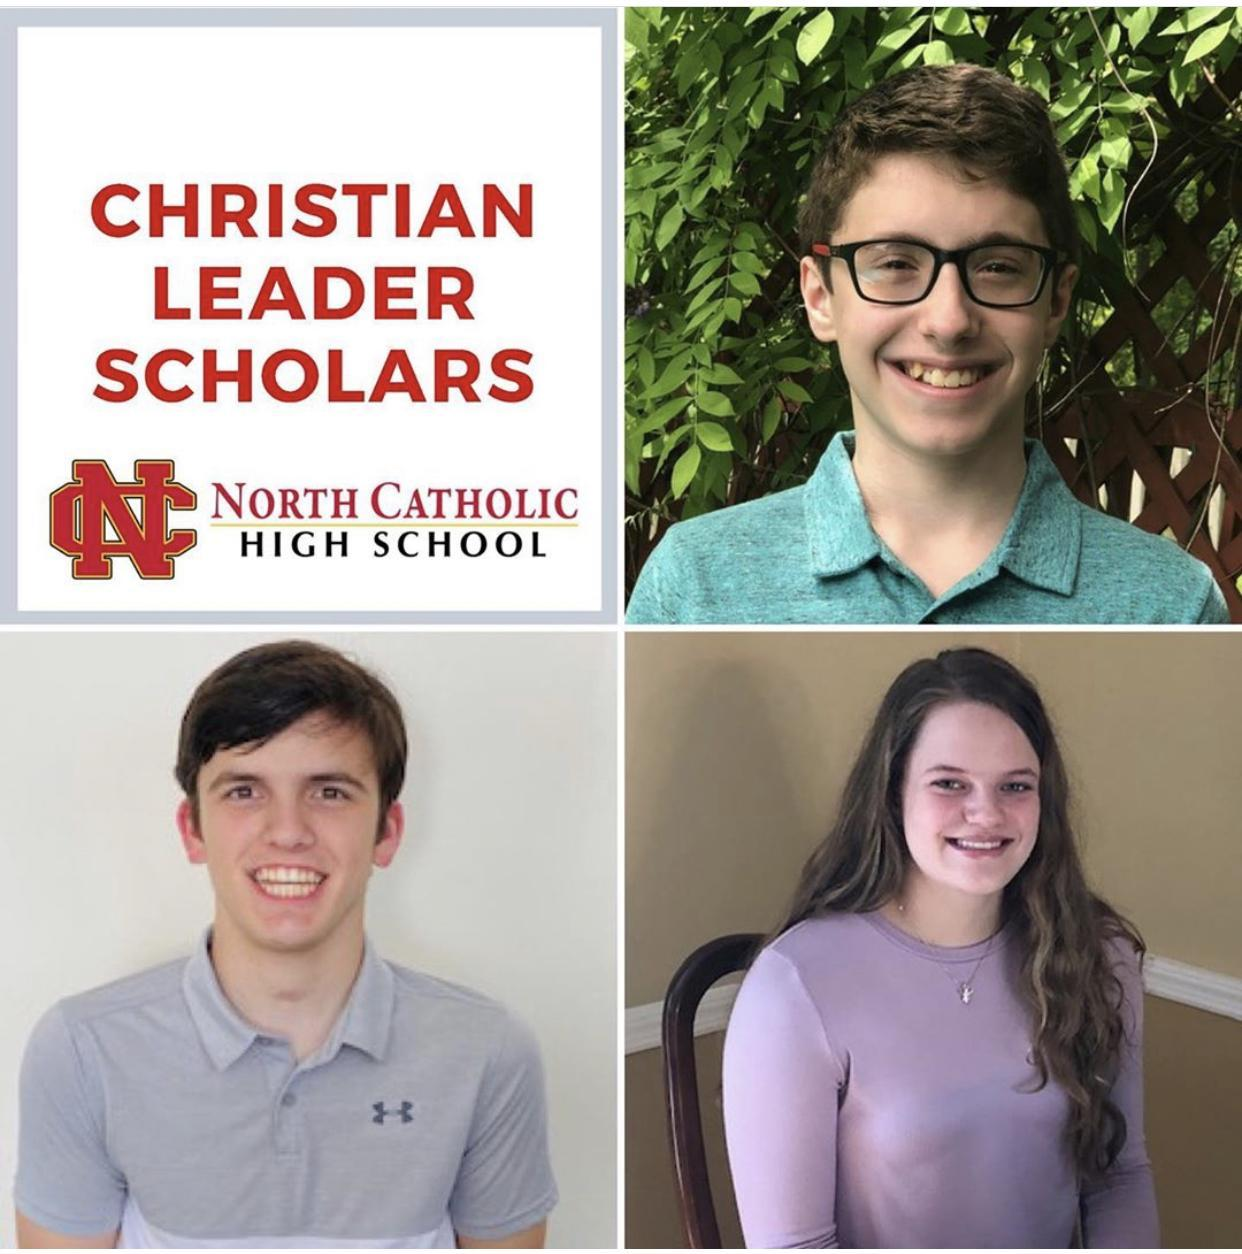 Christian Leader Scholars